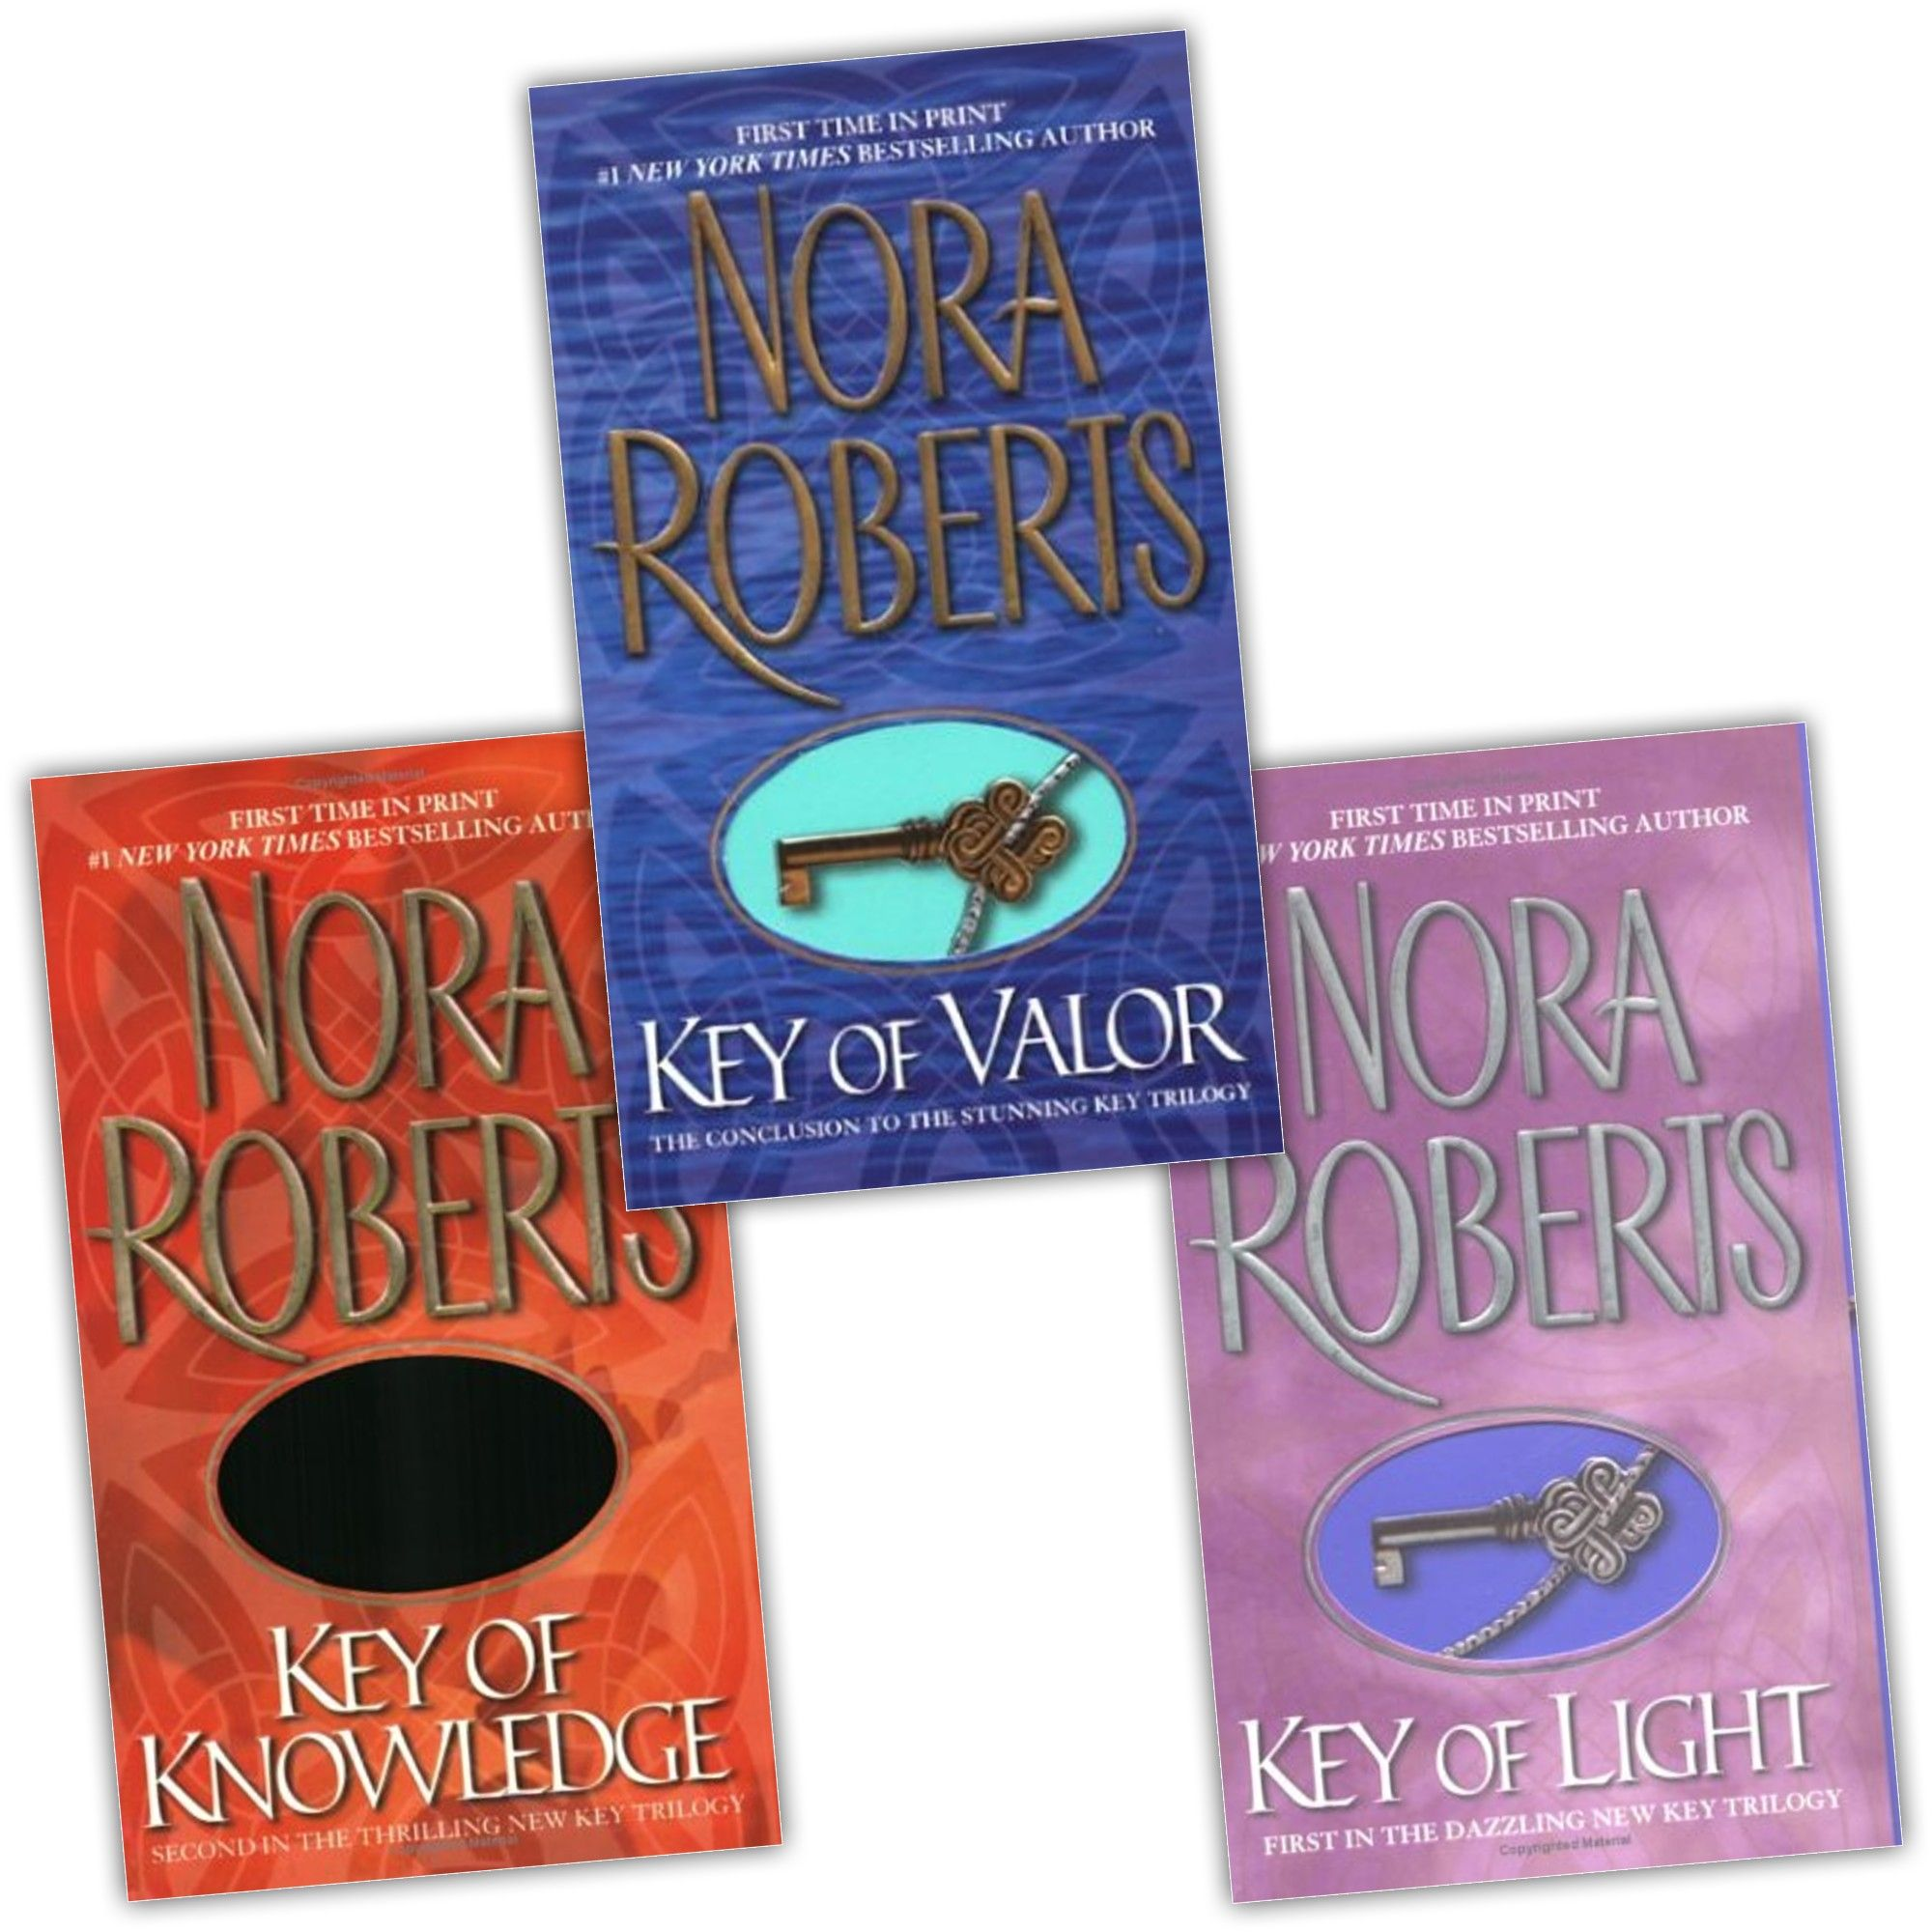 Katsings Cbr4 Review 17 19 The Key Trilogy By Nora Roberts